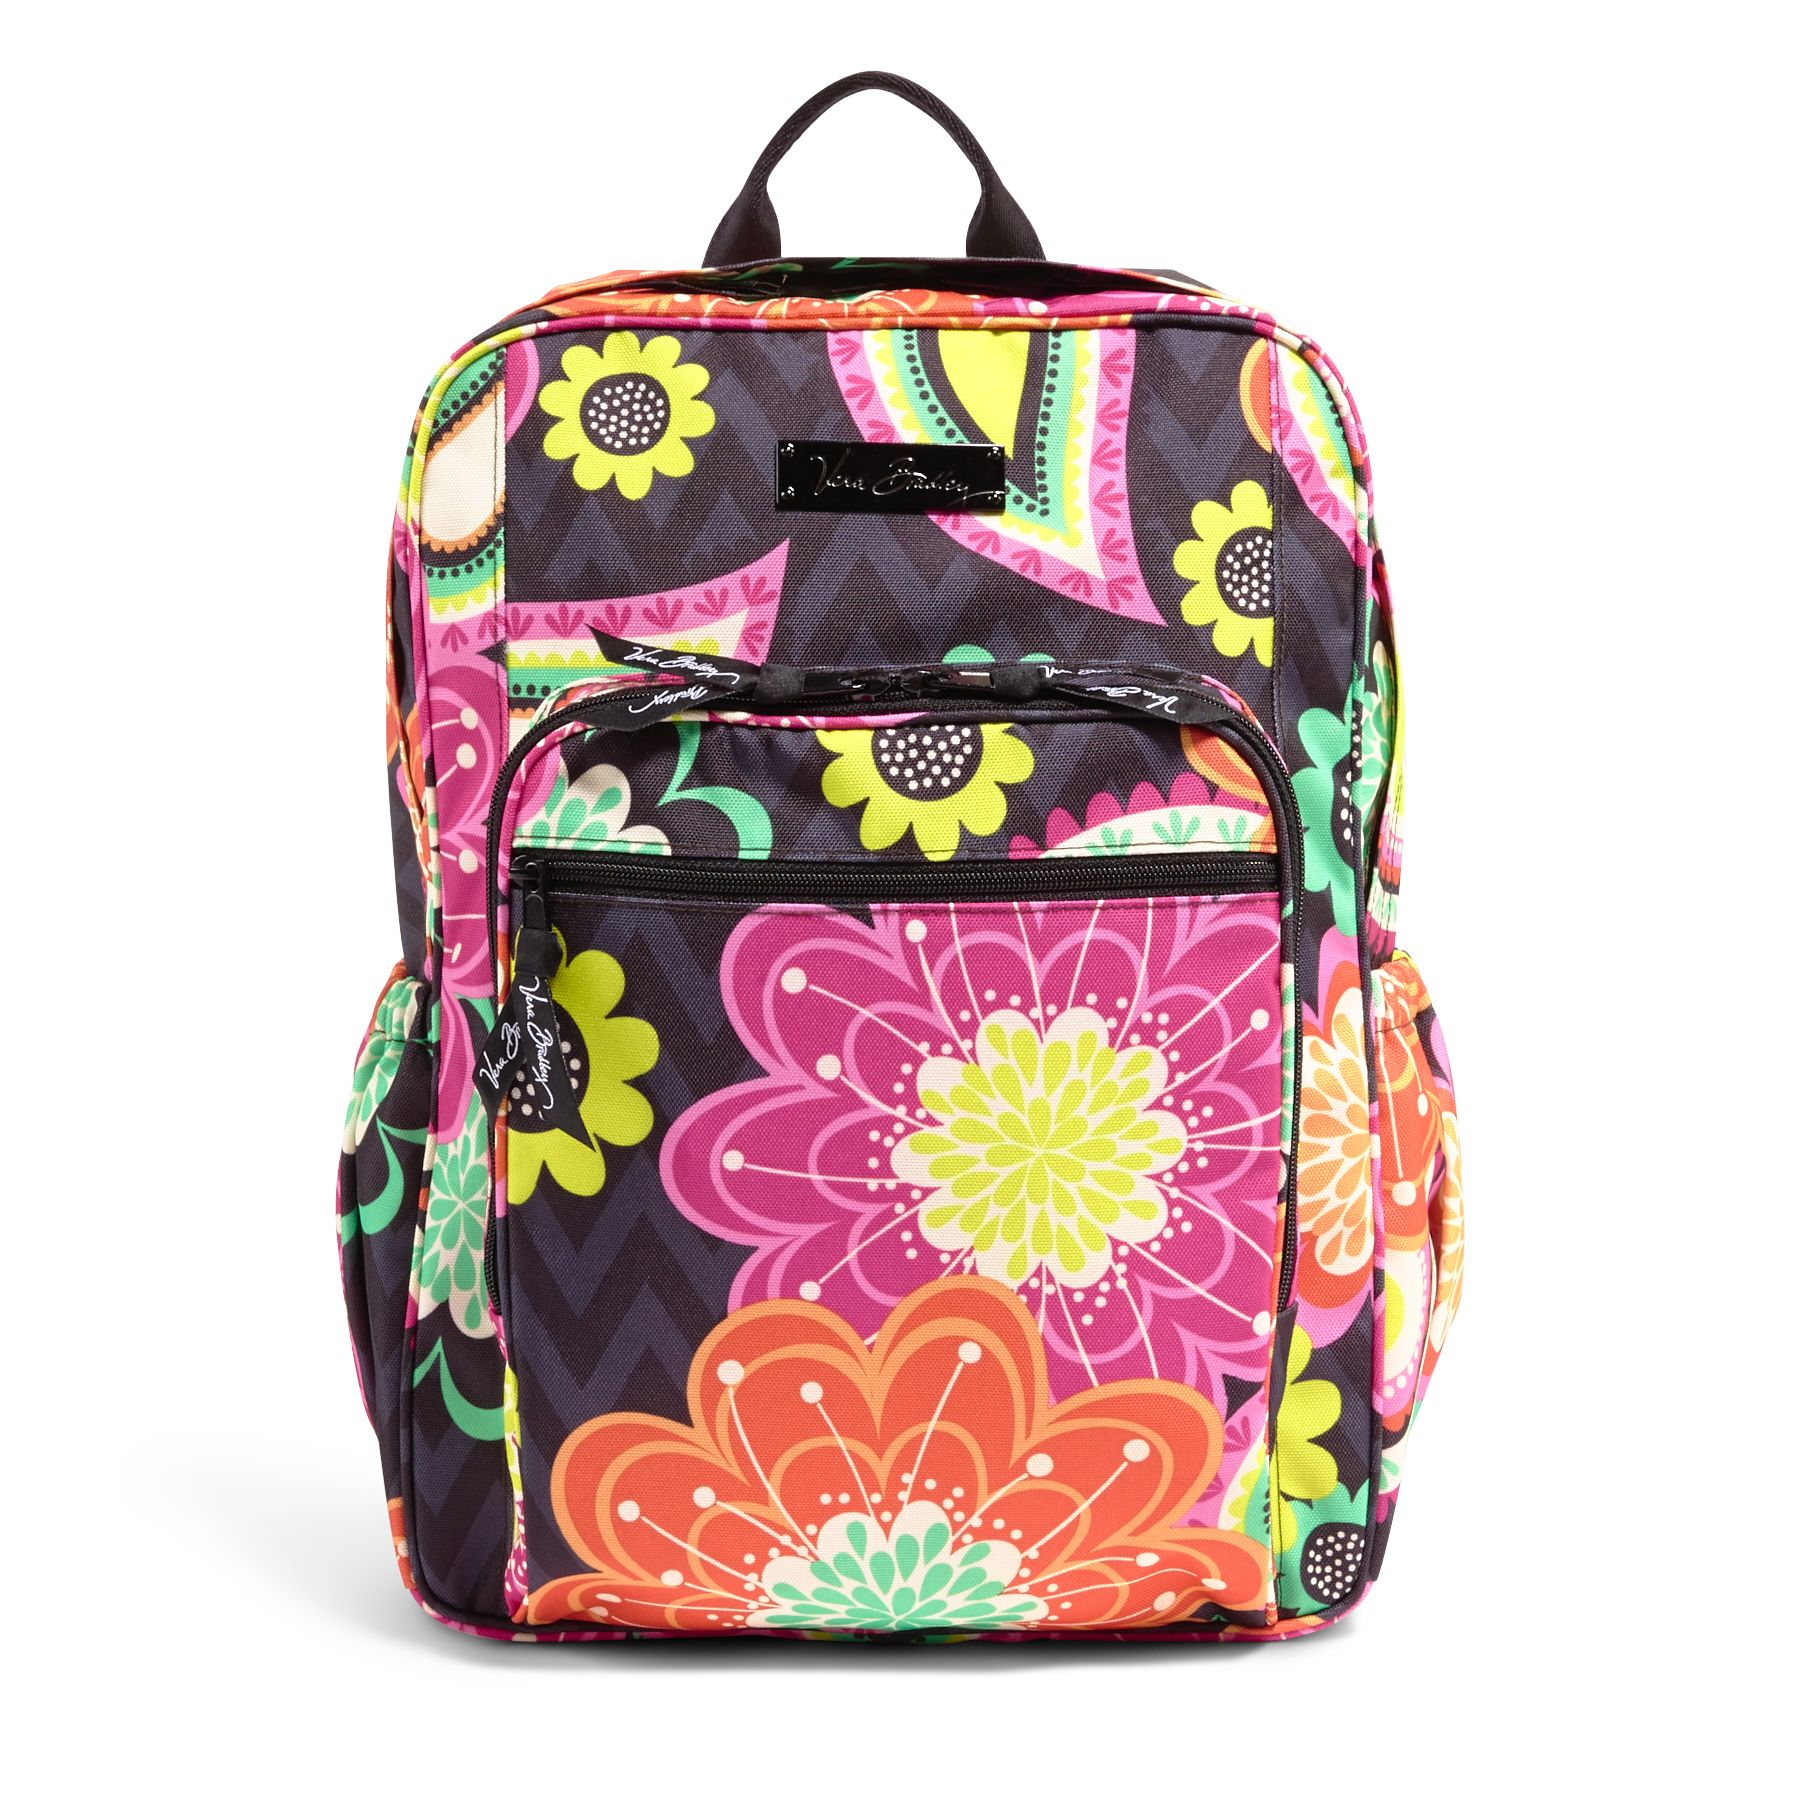 Vera Bradley Lighten Up Medium Backpack in Ziggy Zinnia